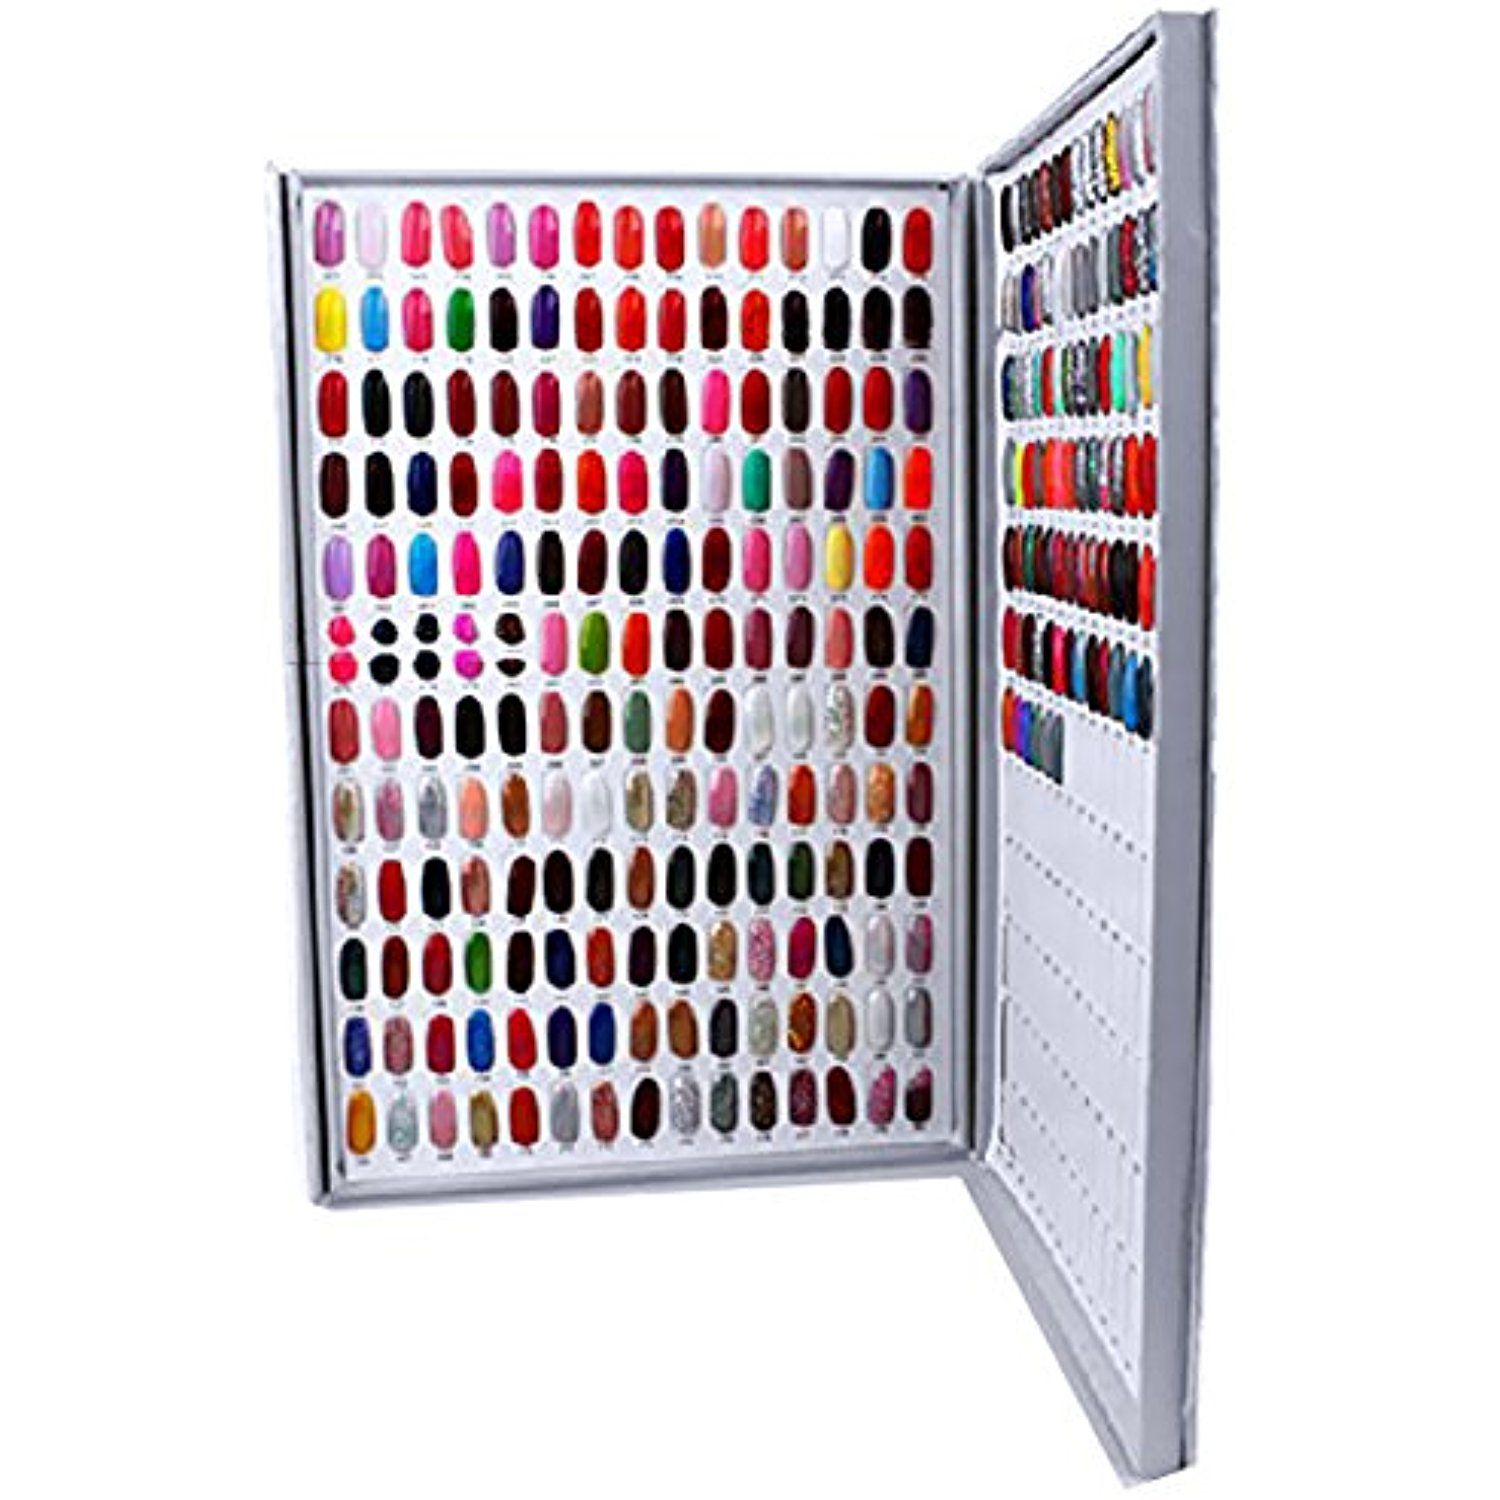 Nail Color Chart Display Gel Polish Practice Design Stick Board Card Art Tools For Salons And Diy At